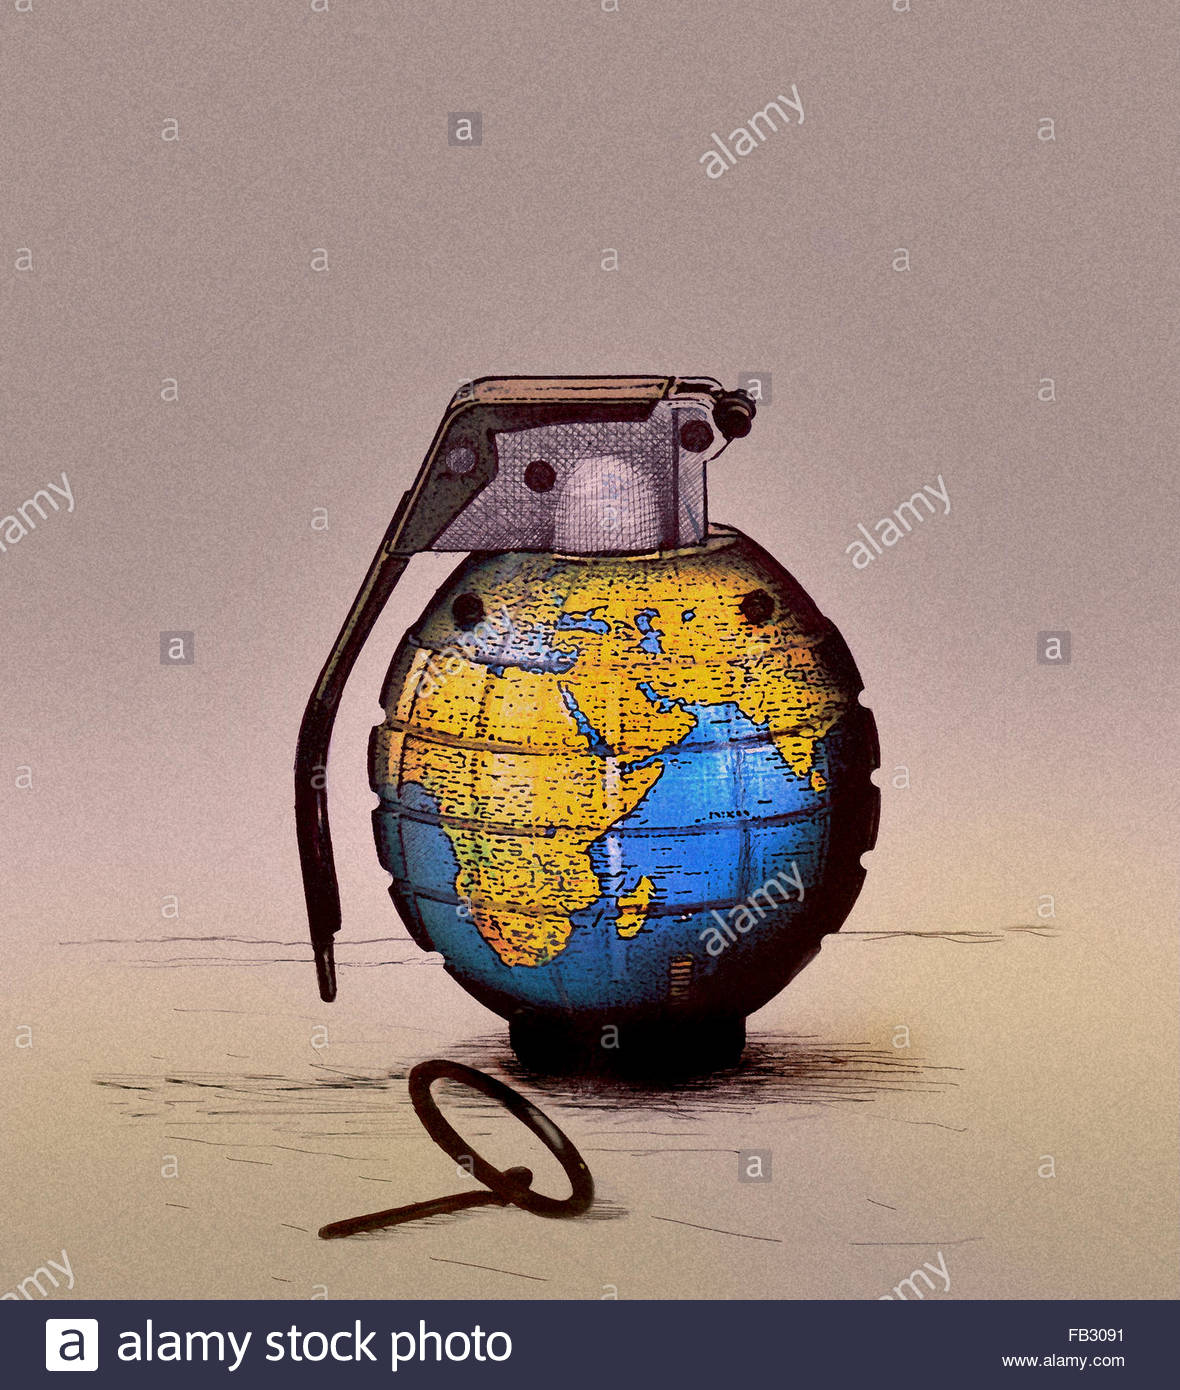 Pin pulled on globe grenade - Stock Image